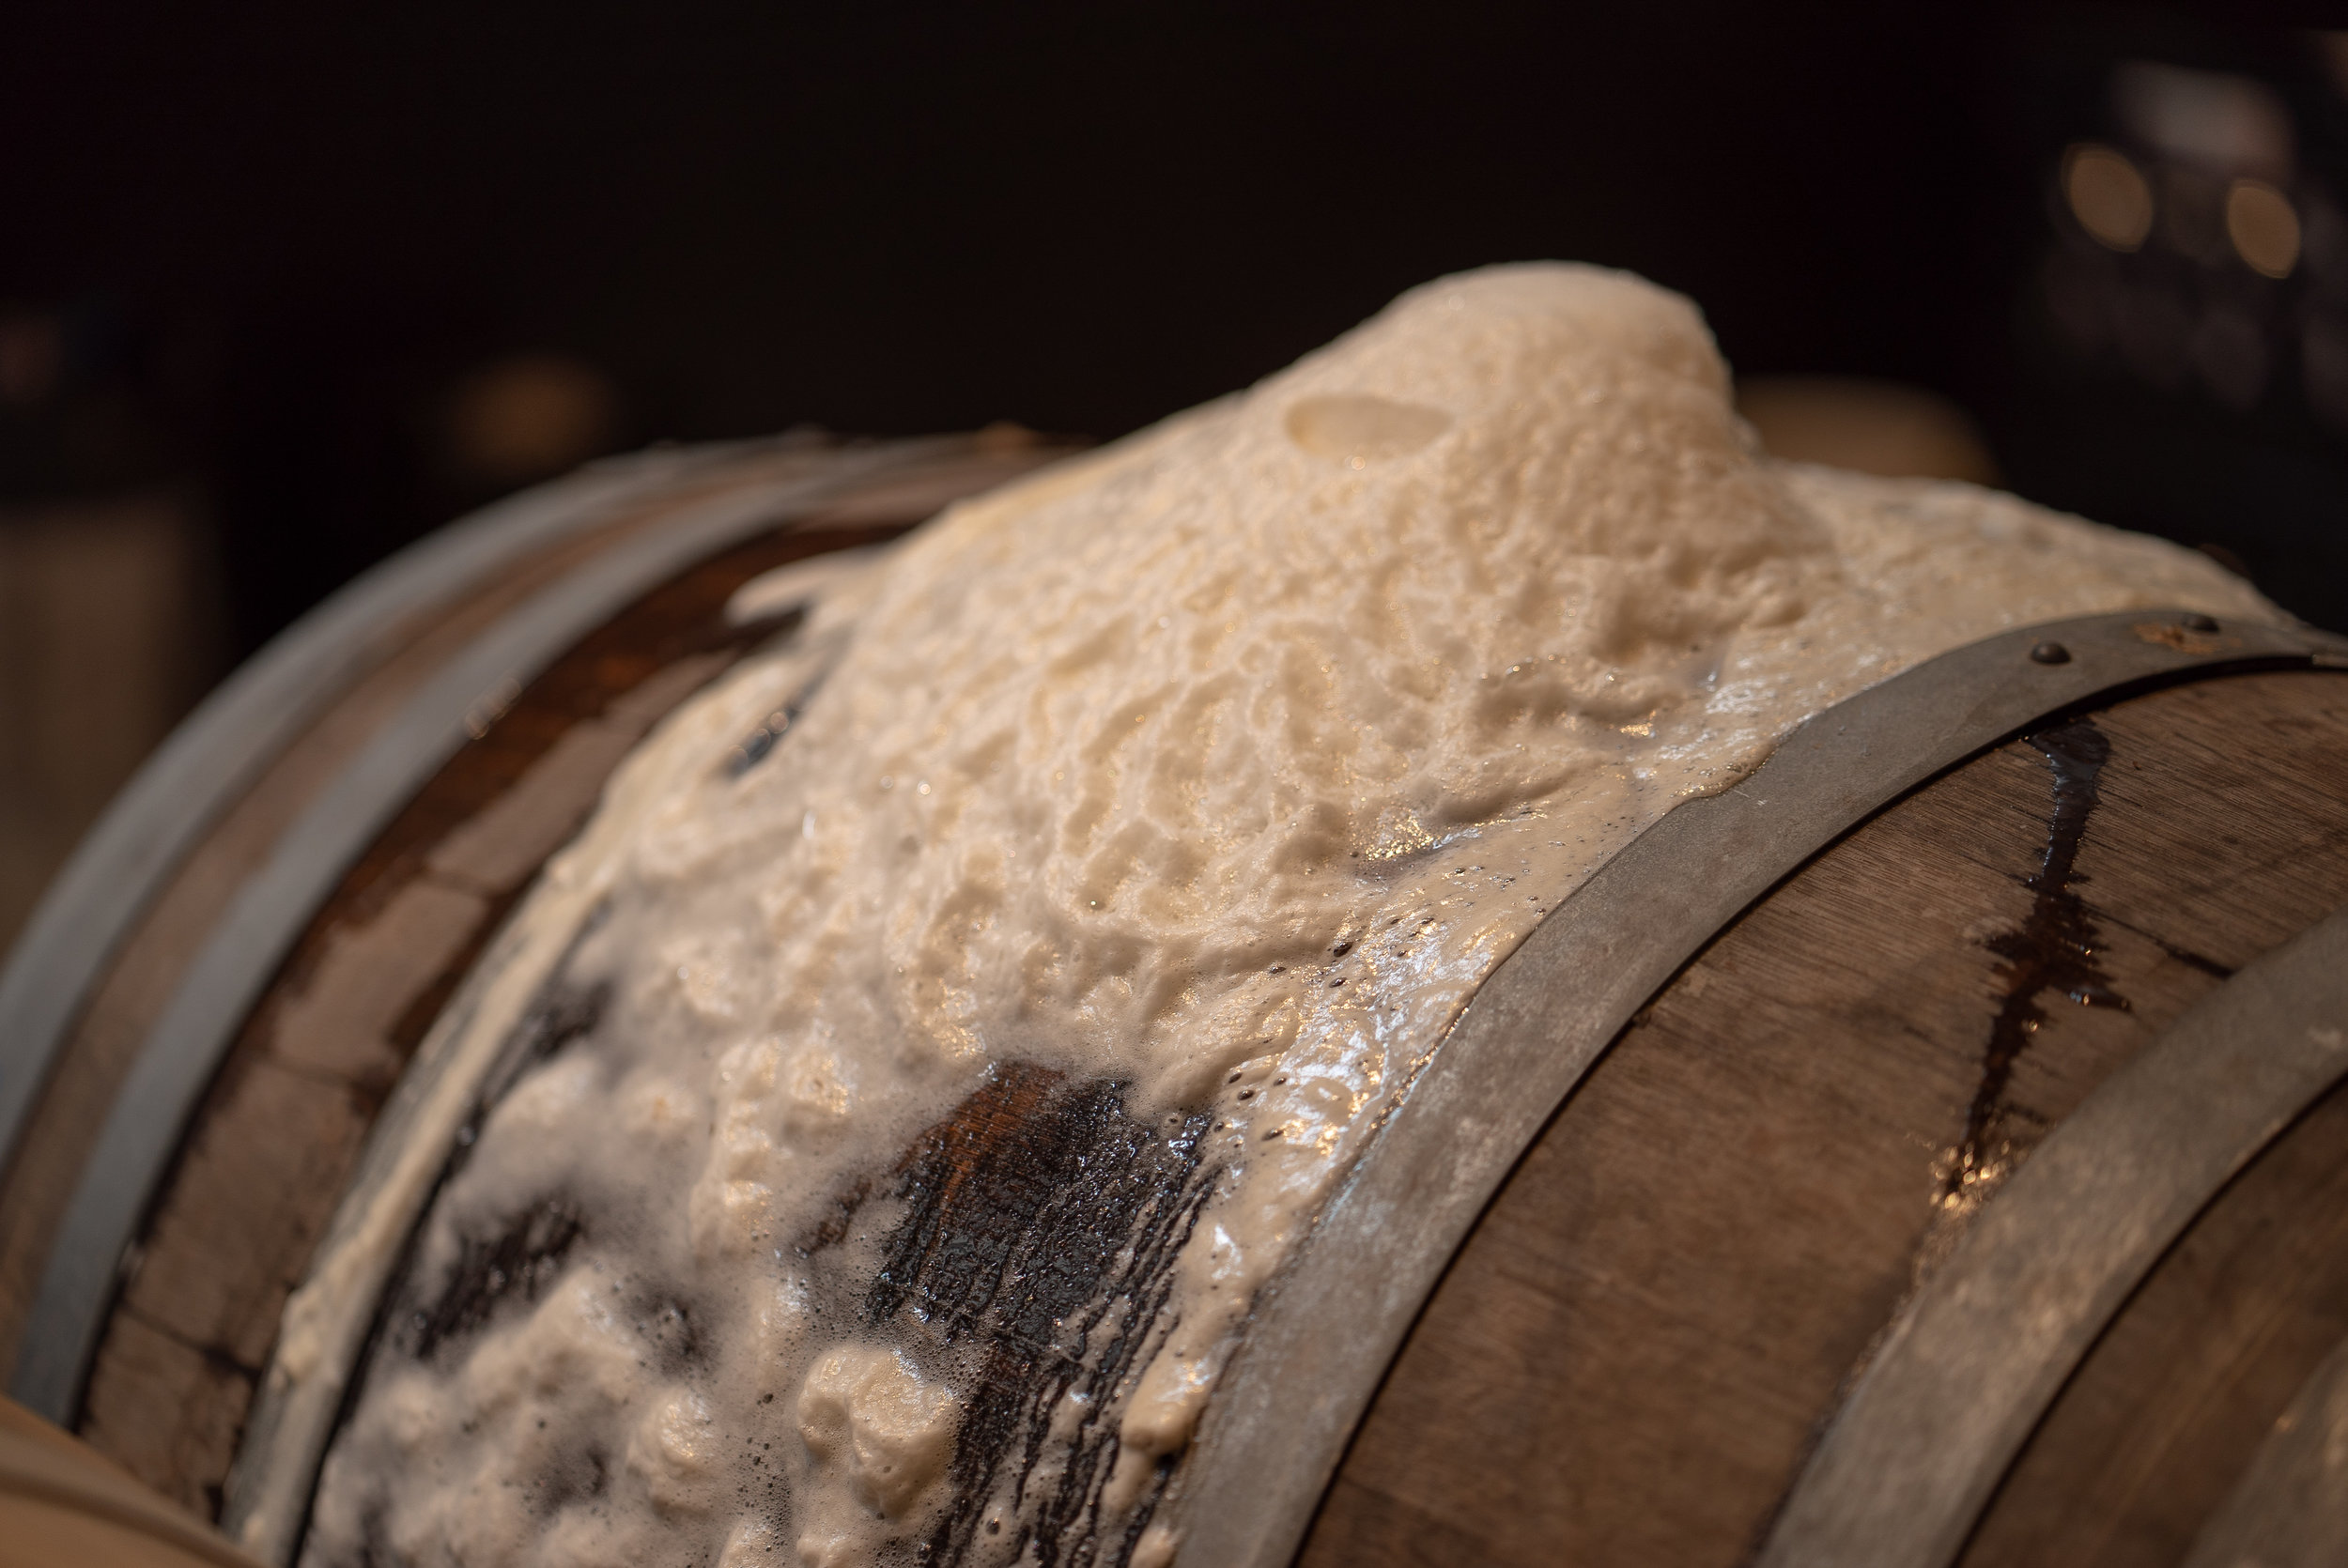 Fermented in oak barrels… - Our mixed culture ales are inspired by fermentation techniques from a simpler agrarian time, before modern monoculture fermentation transformed beer from a complex and nuanced beverage into the product of industry and clever marketing.